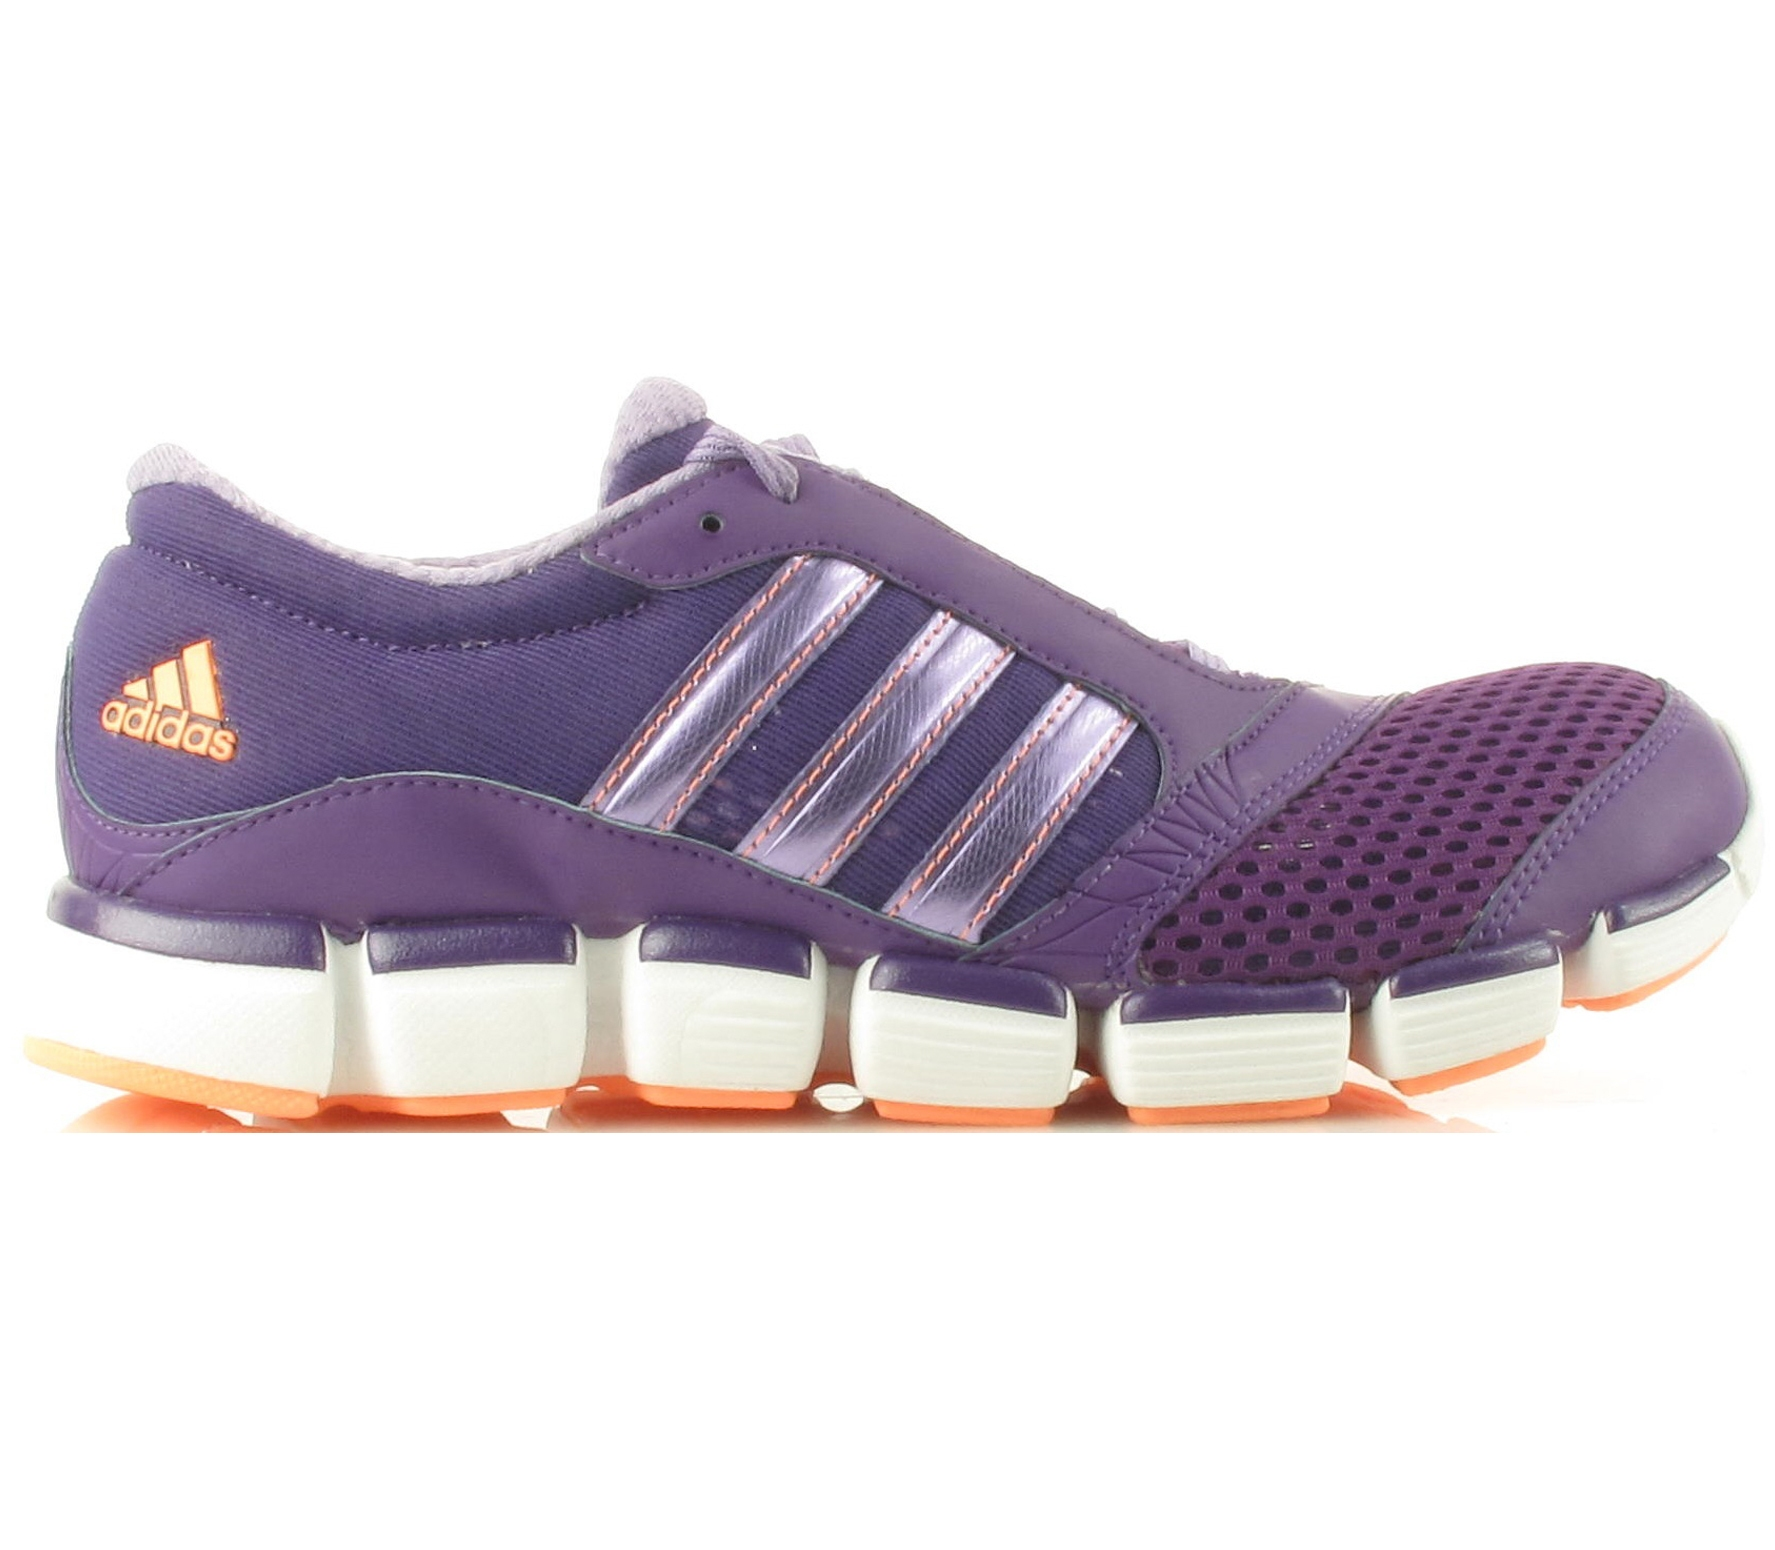 Adidas - Running shoe CC Chill Women lila running shoes Barefoot ride ...